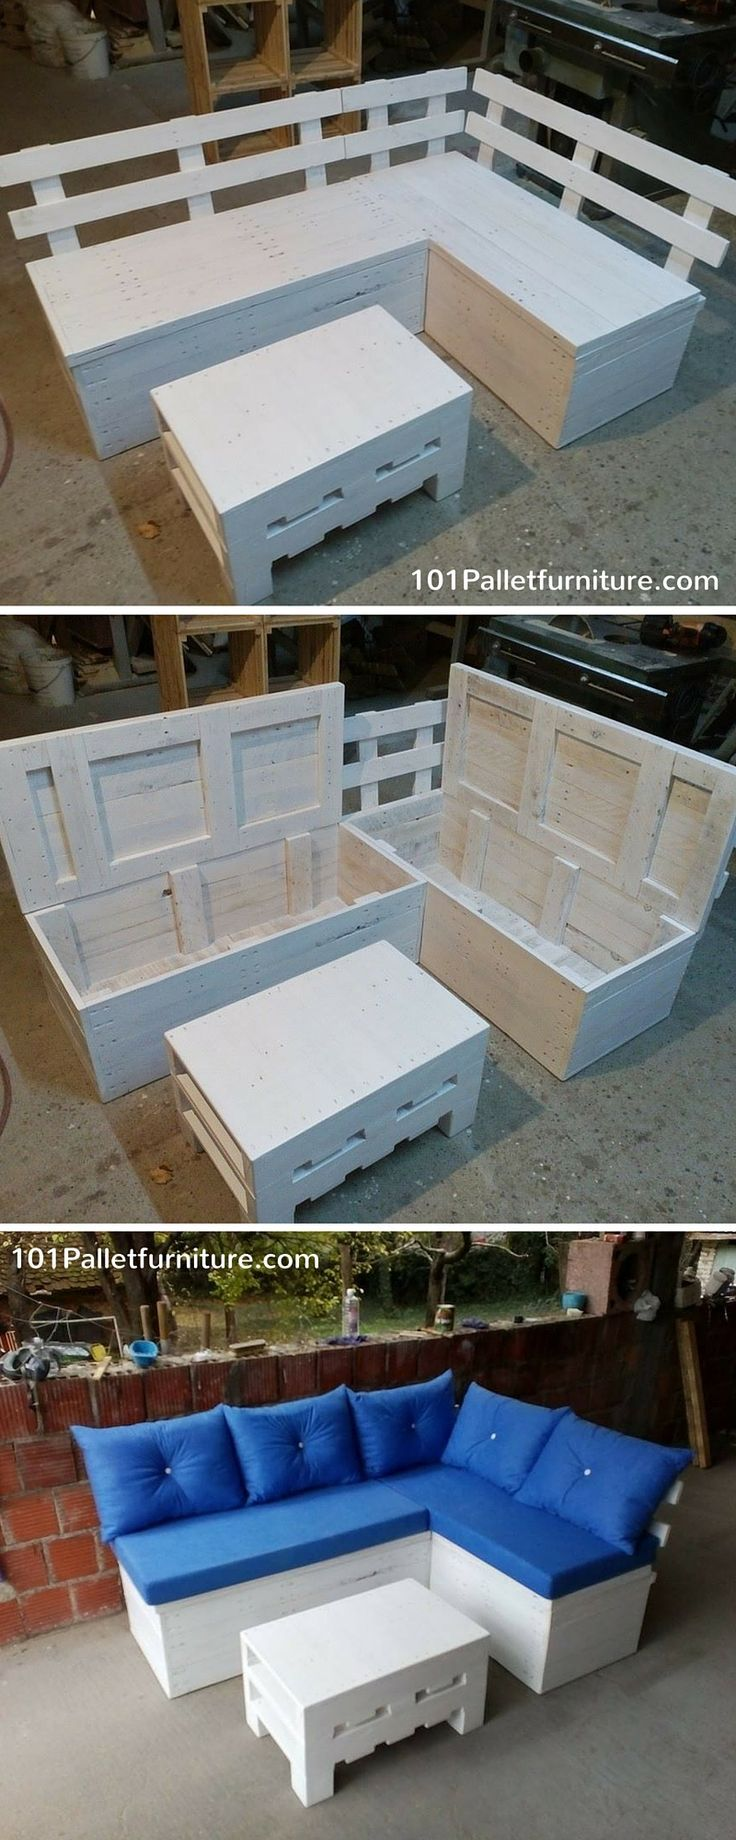 Diy pallet sectional sofa table ideas pallet - Best 25 Pallet Sectional Couch Ideas On Pinterest Pallet Sectional Pallet Couch And Sectional Patio Furniture